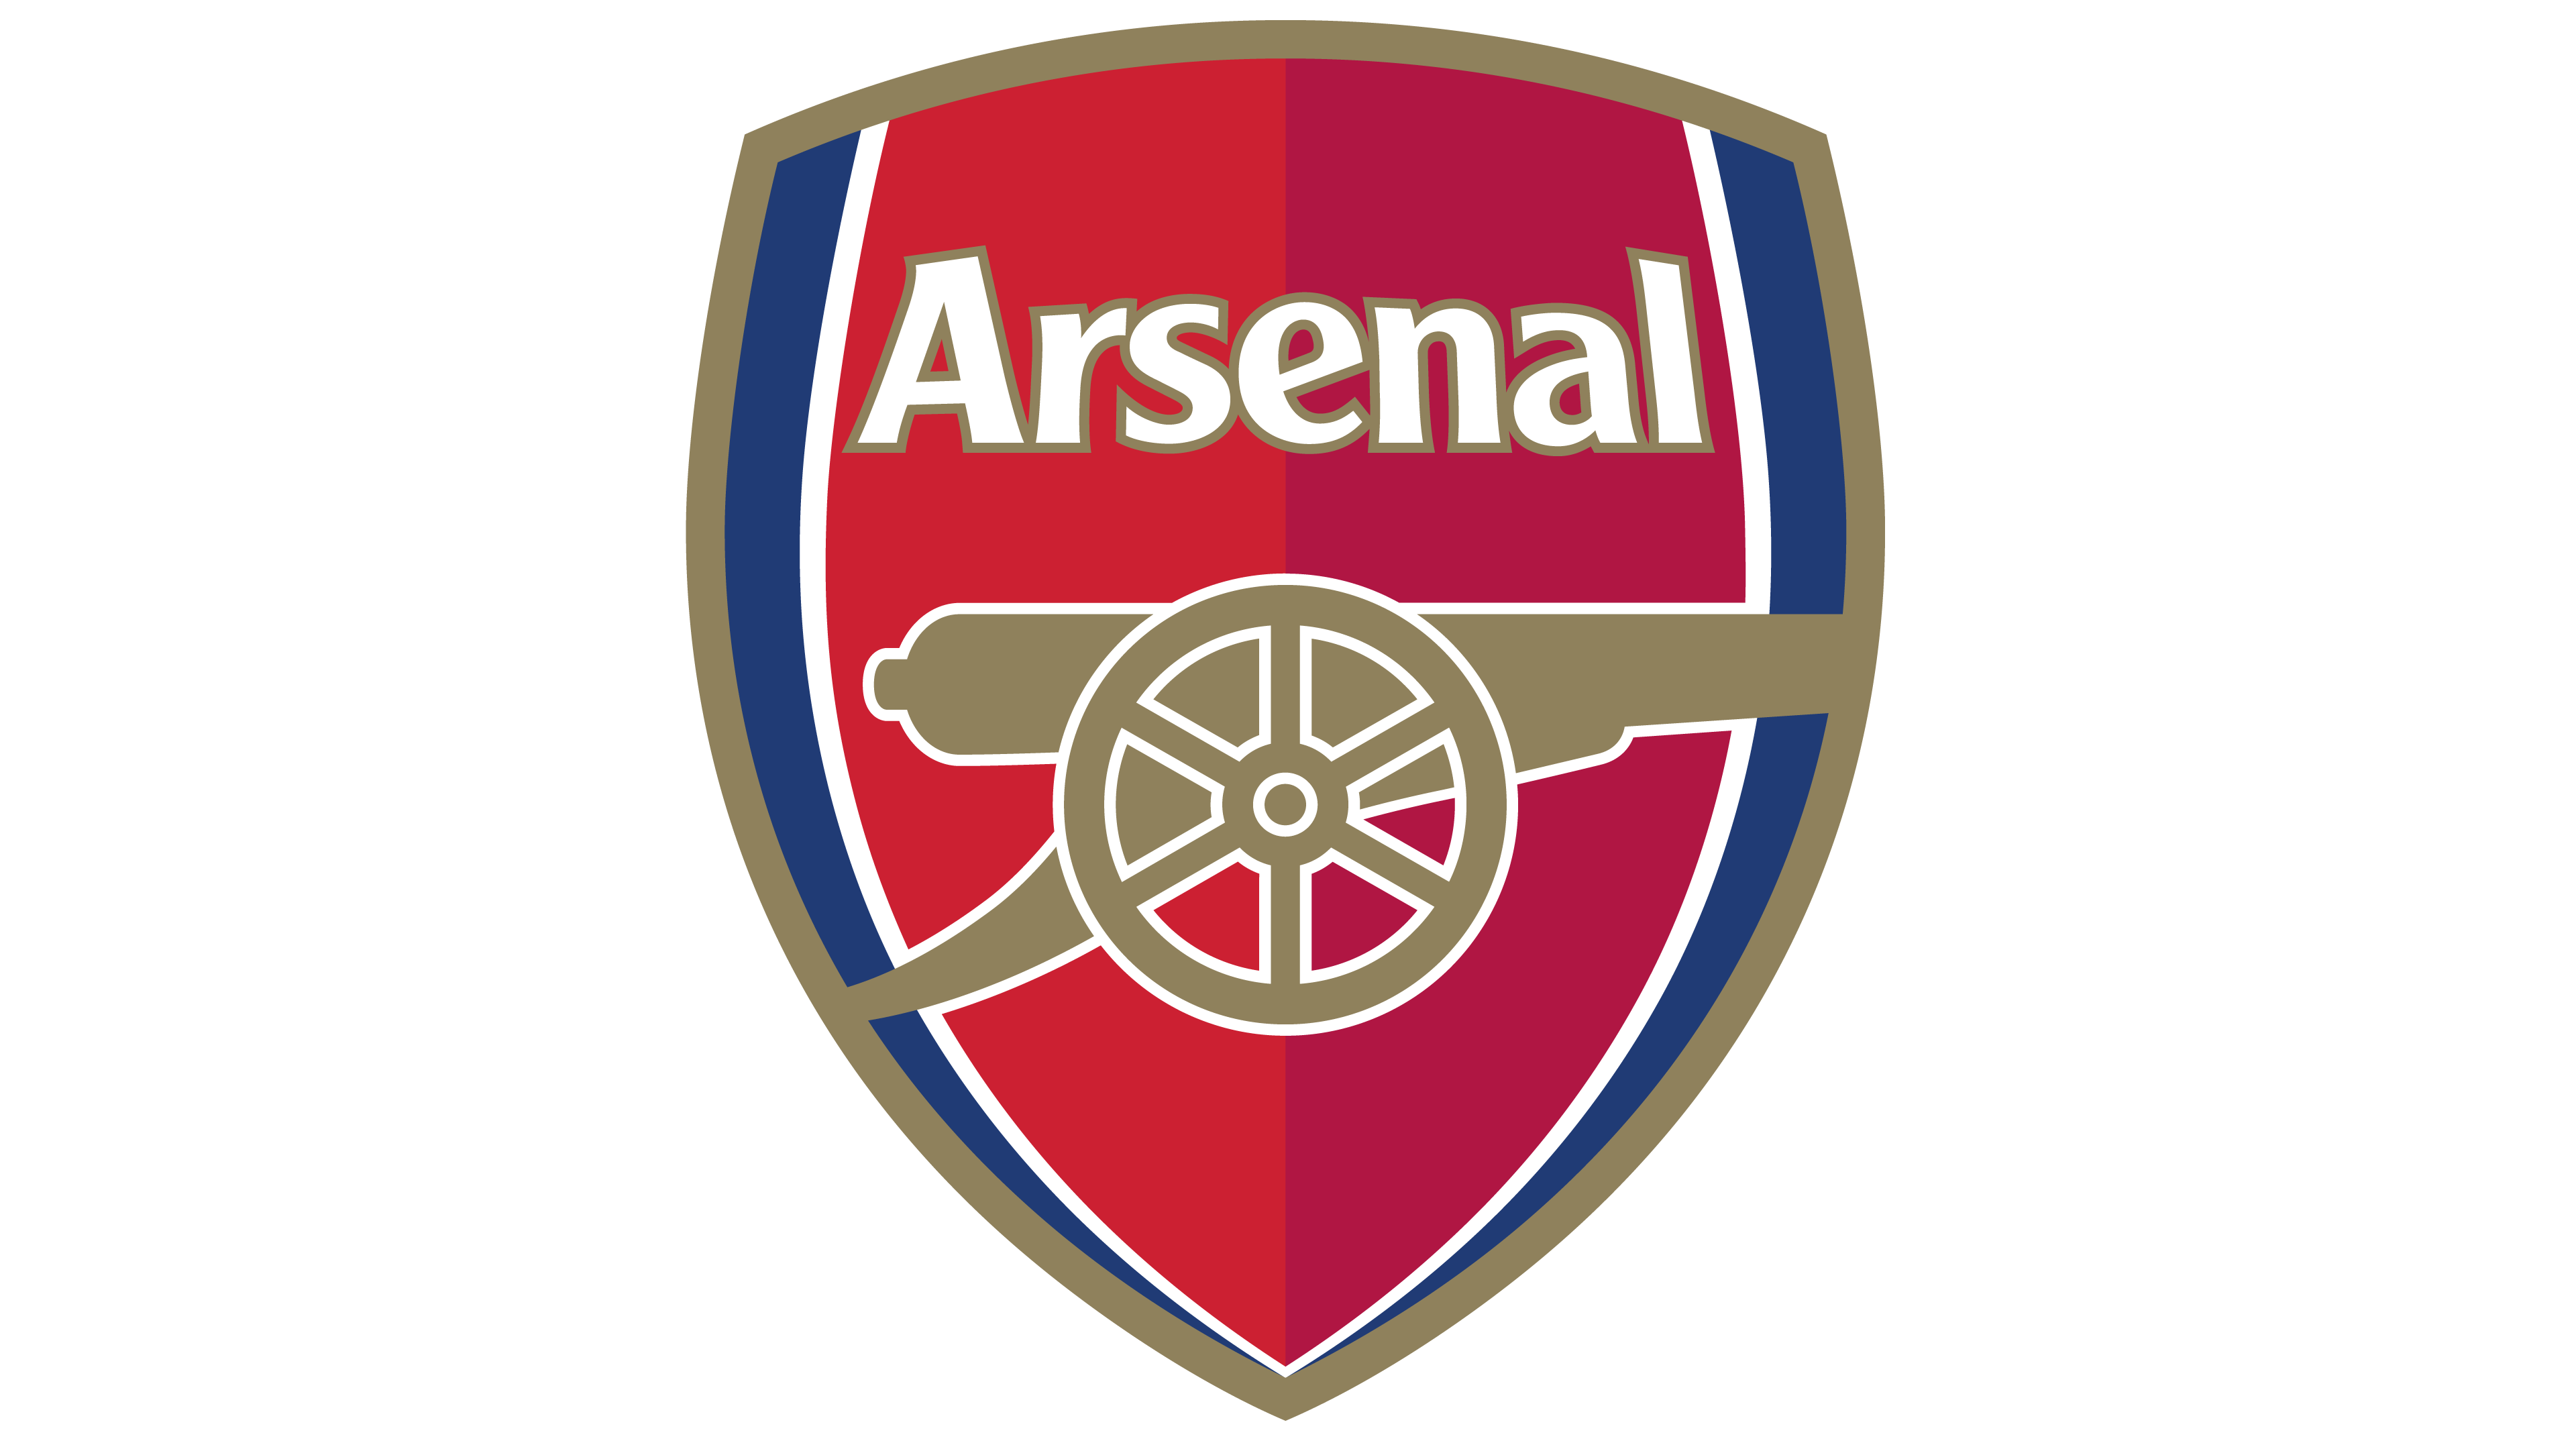 Club vector modern. Arsenal logo interesting history